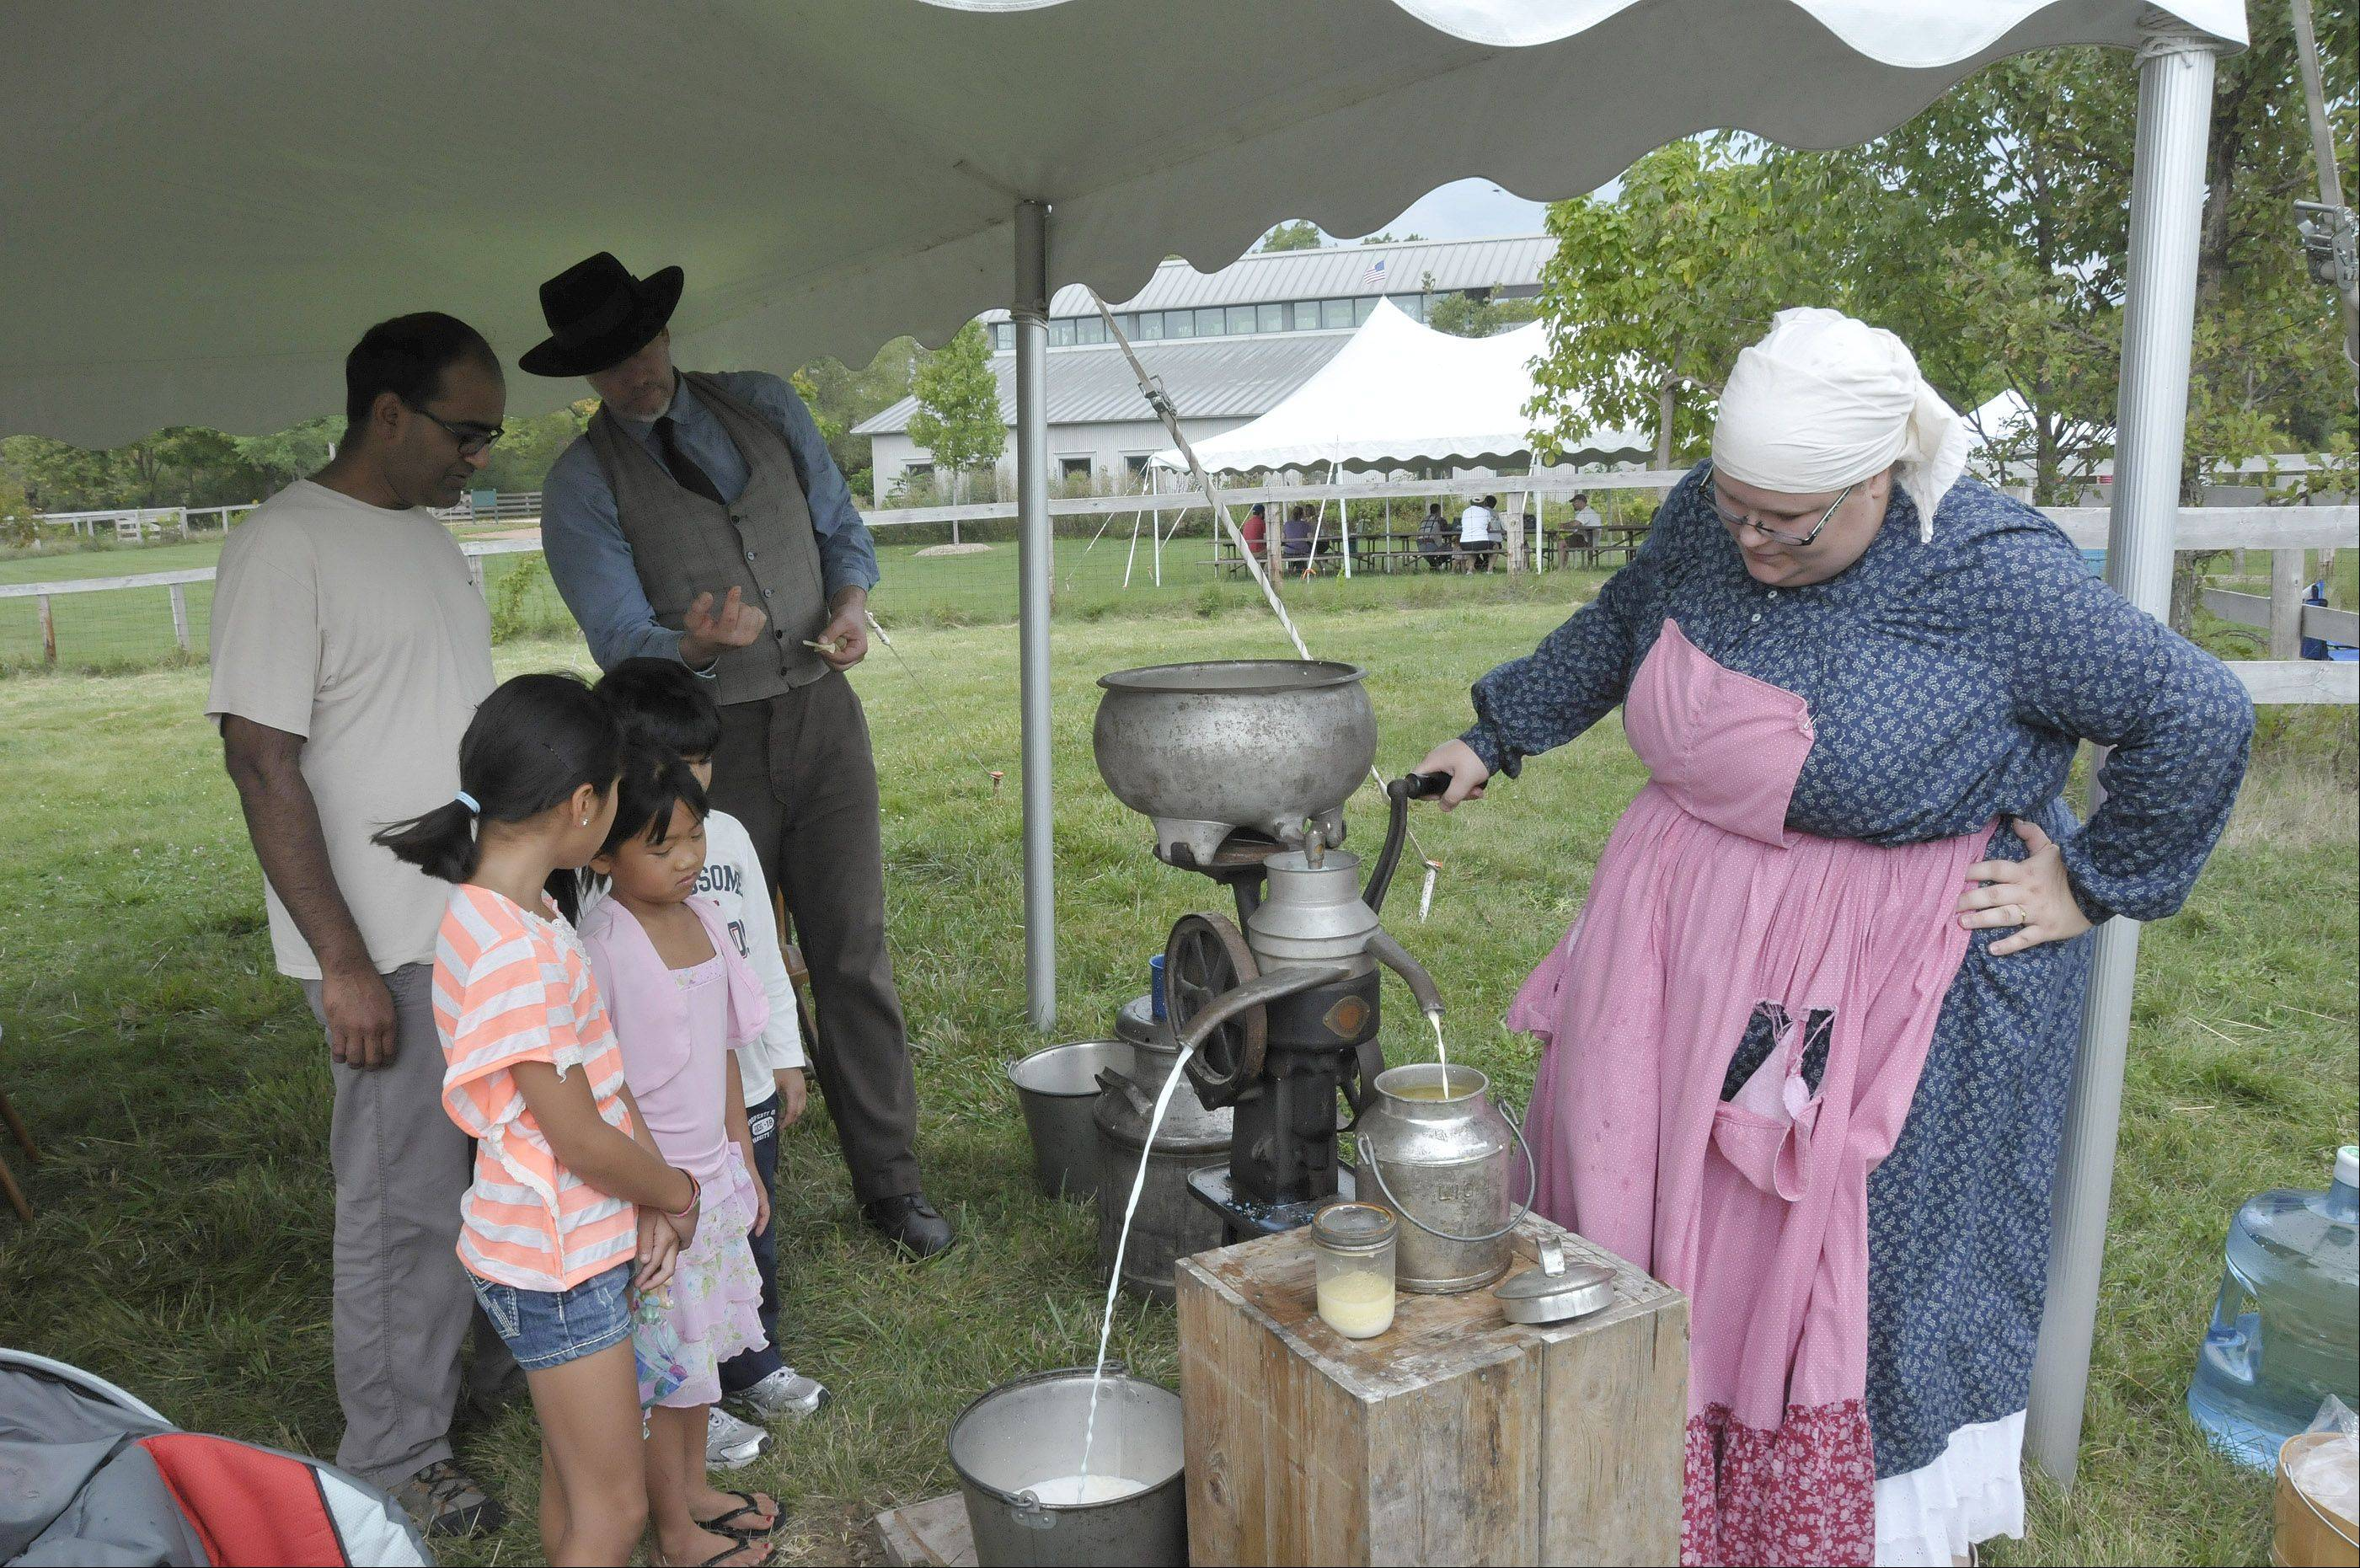 Kelly Lenza, of St. Charles, demonstrates butter making the way it was done in the 1890s during the old-fashioned country fair Sunday at Kline Creek Farm in West Chicago.